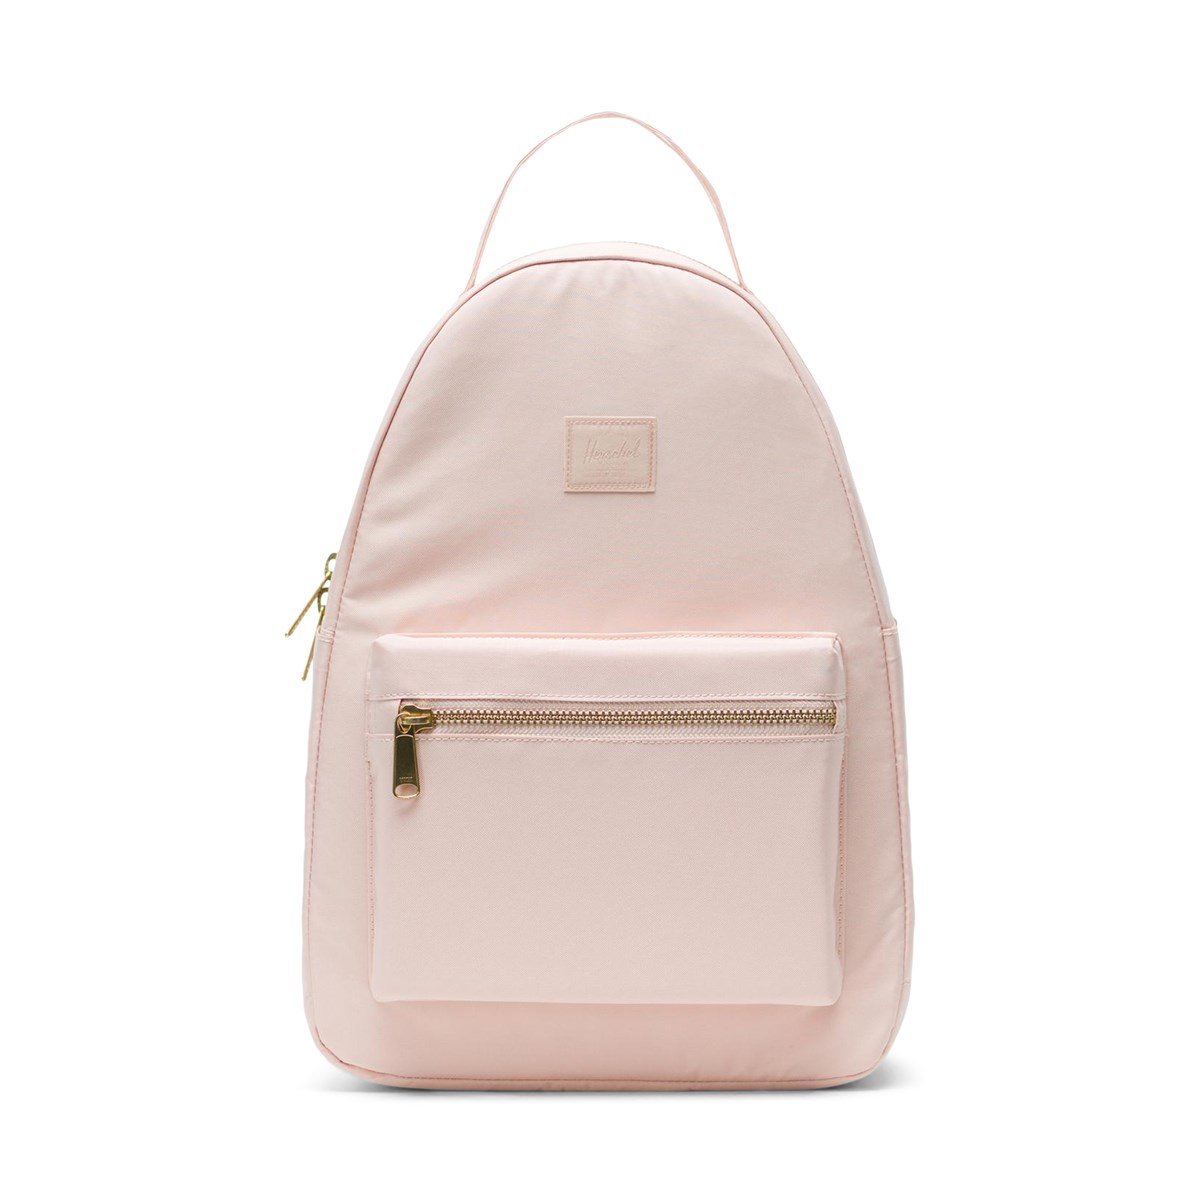 Nova Small Light Backpack in Rose